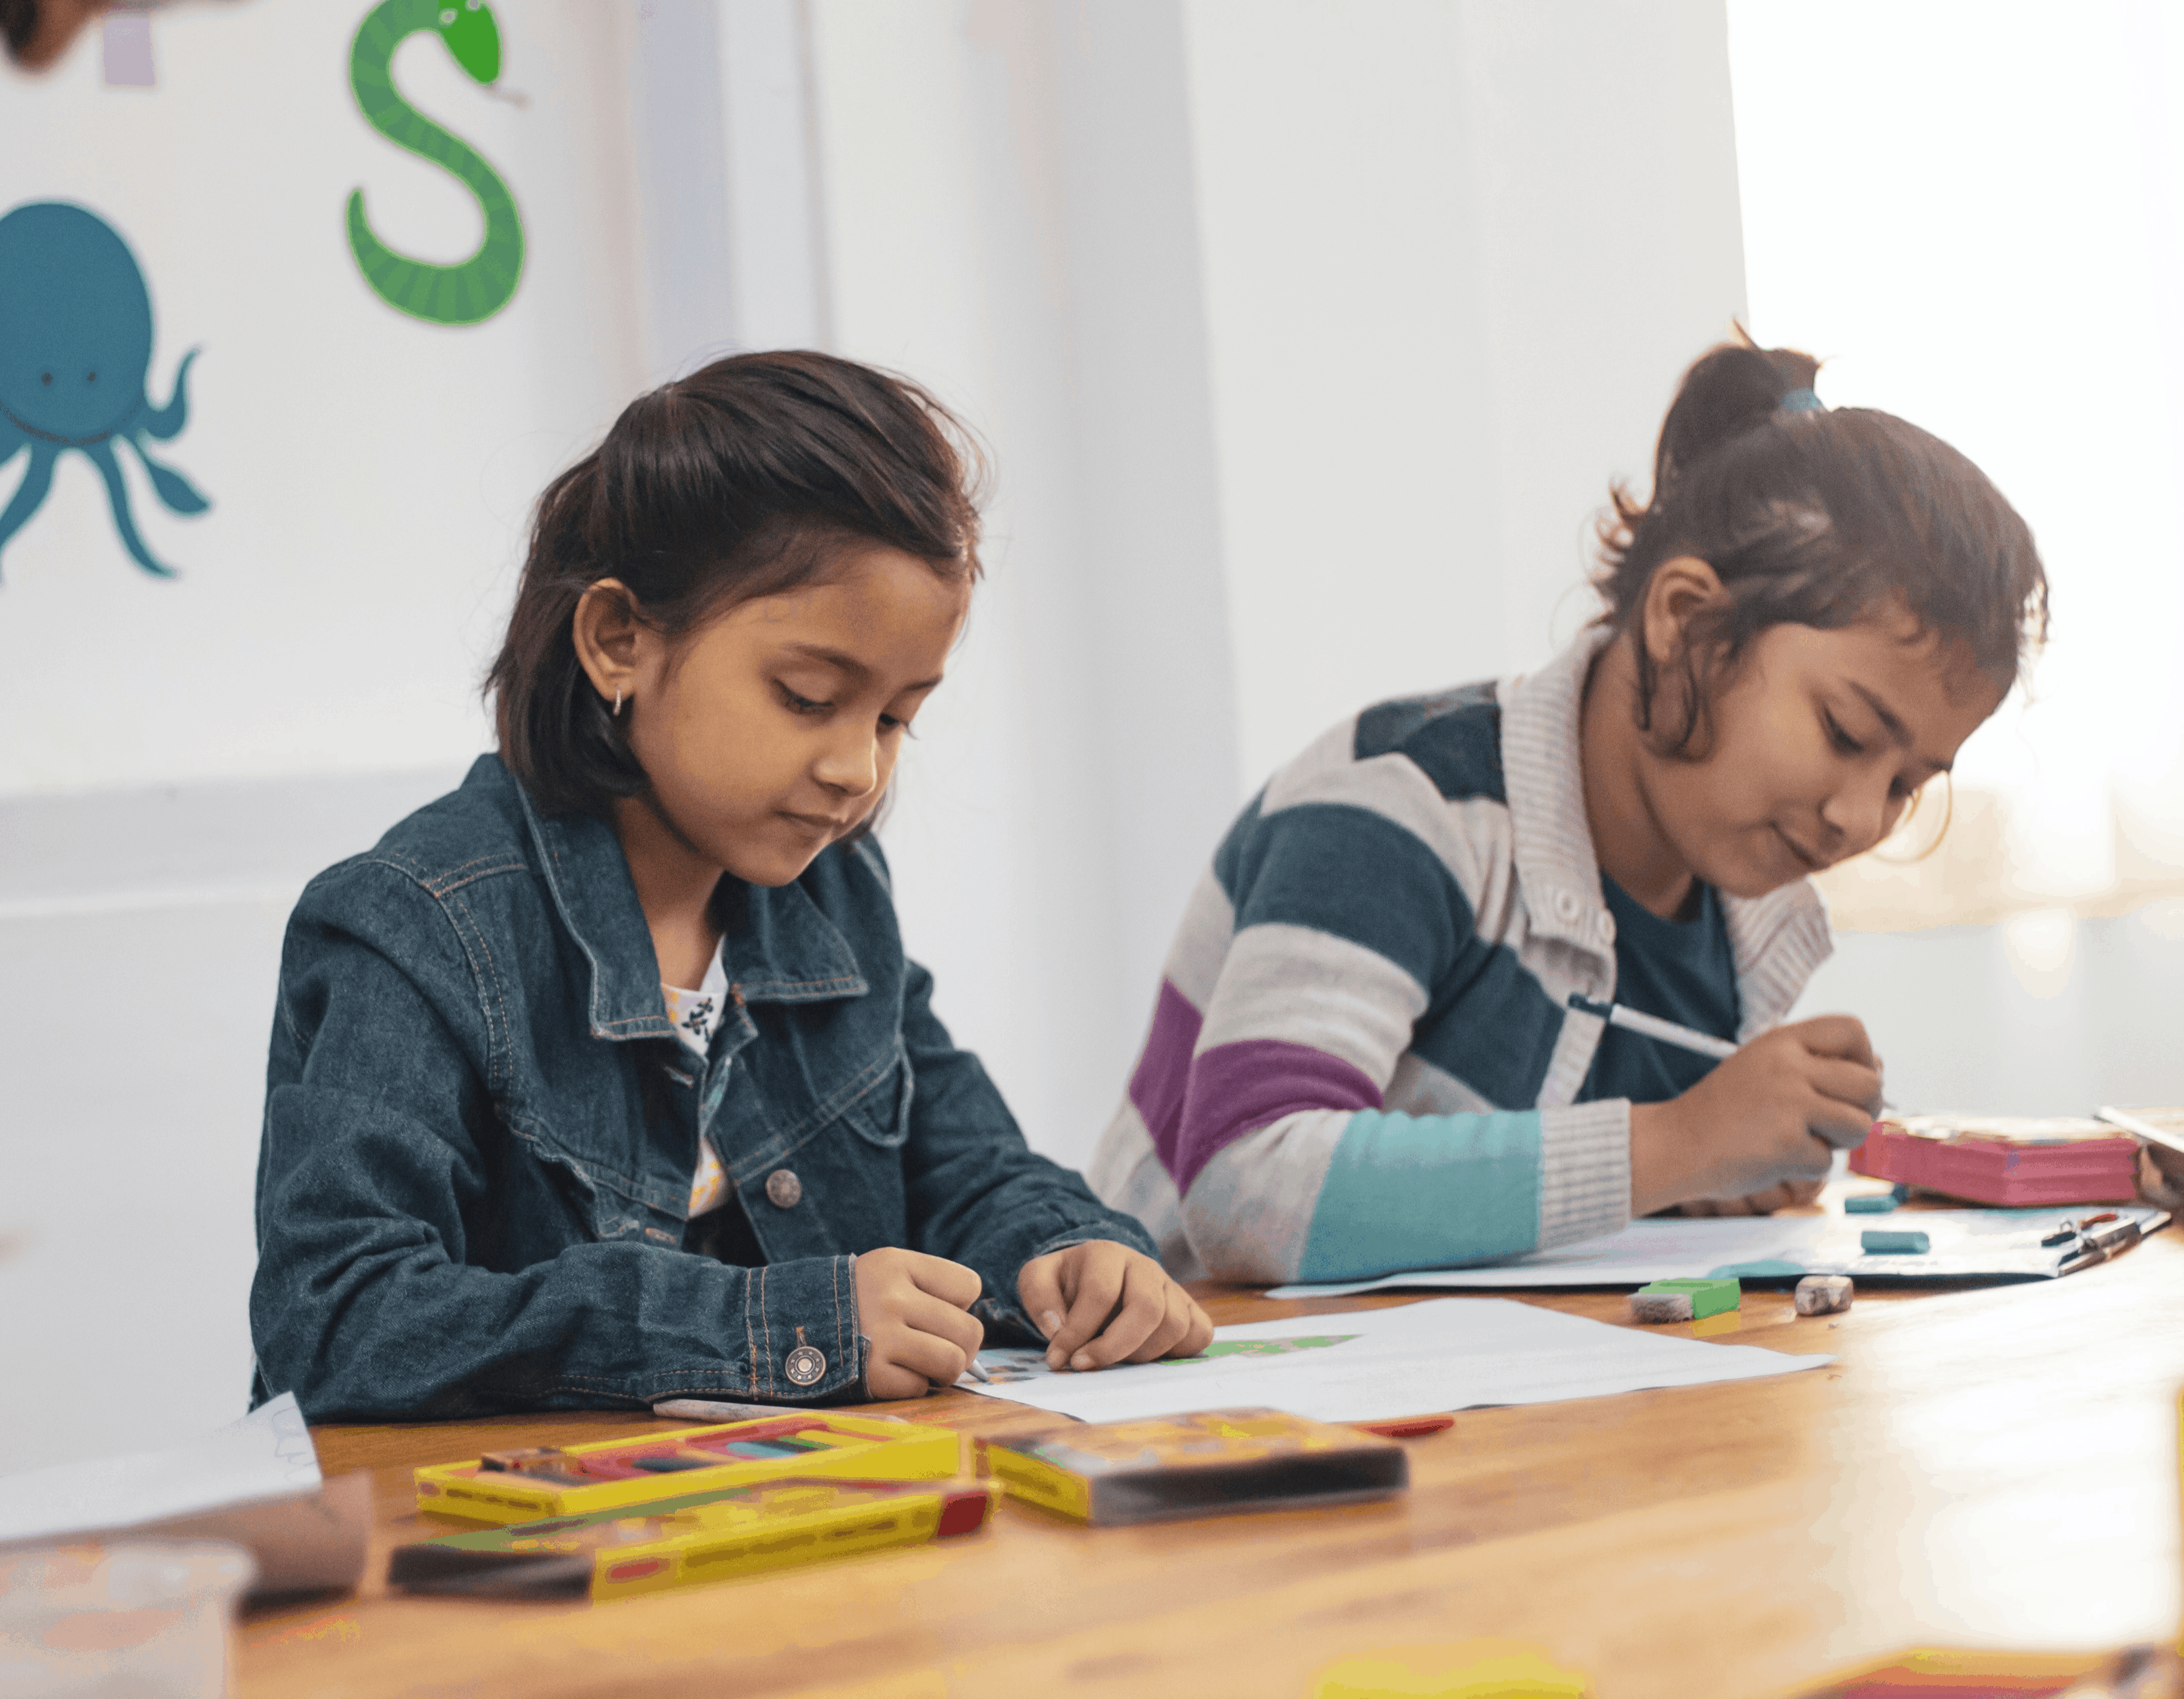 tips for remote learning multiple age kids